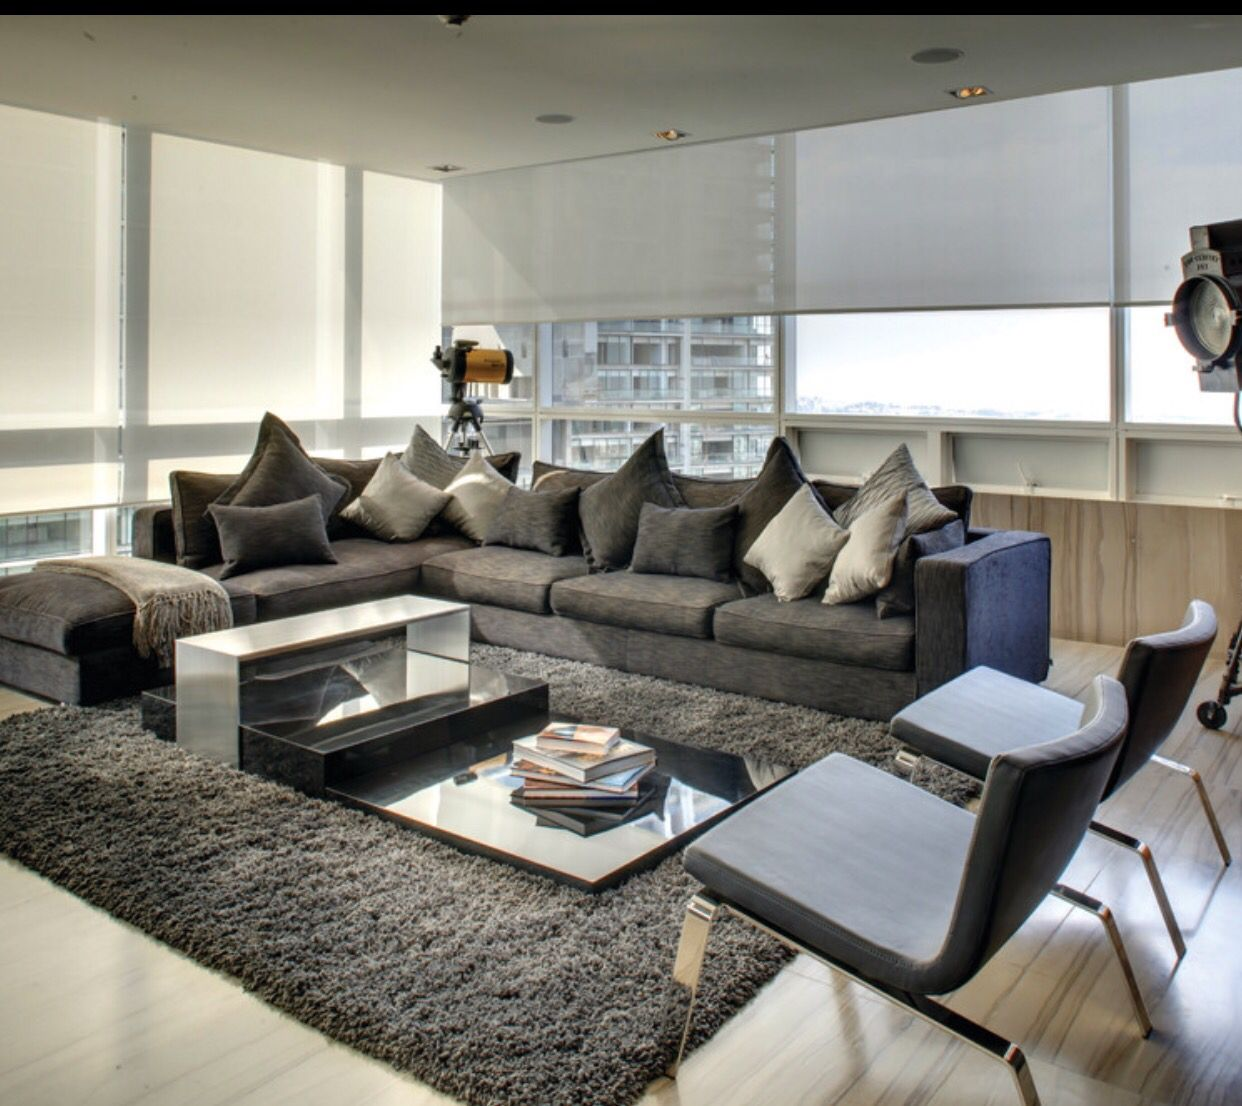 Gray Furniture With Shaggy Rug And Light Floors Sectional Sofas Living Room Grey Couch Decor Dark Grey Living Room